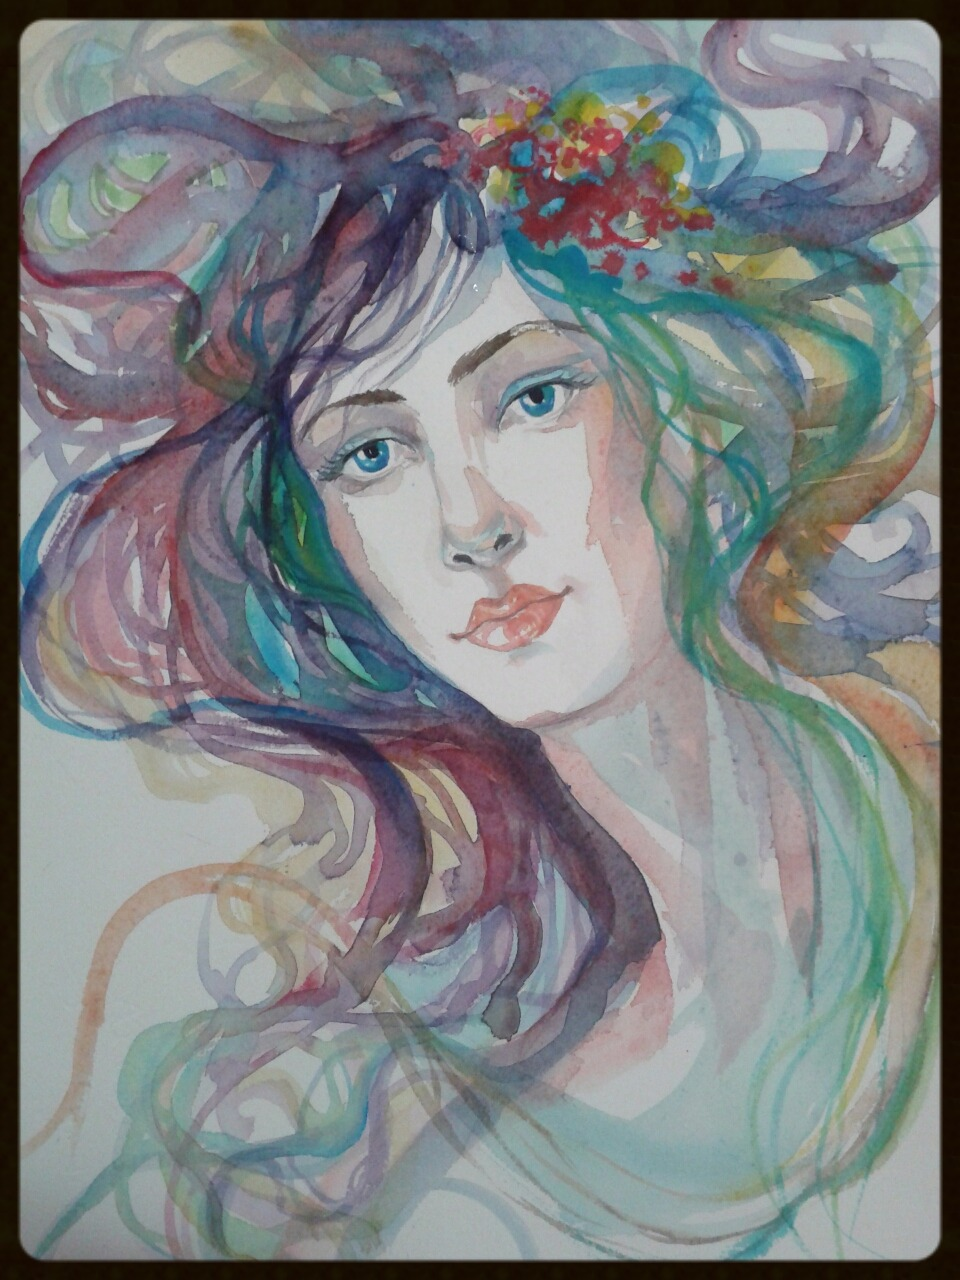 EDITBAKK ORIGINAL WATERCOLOR Lili 22 x 15 in_edited